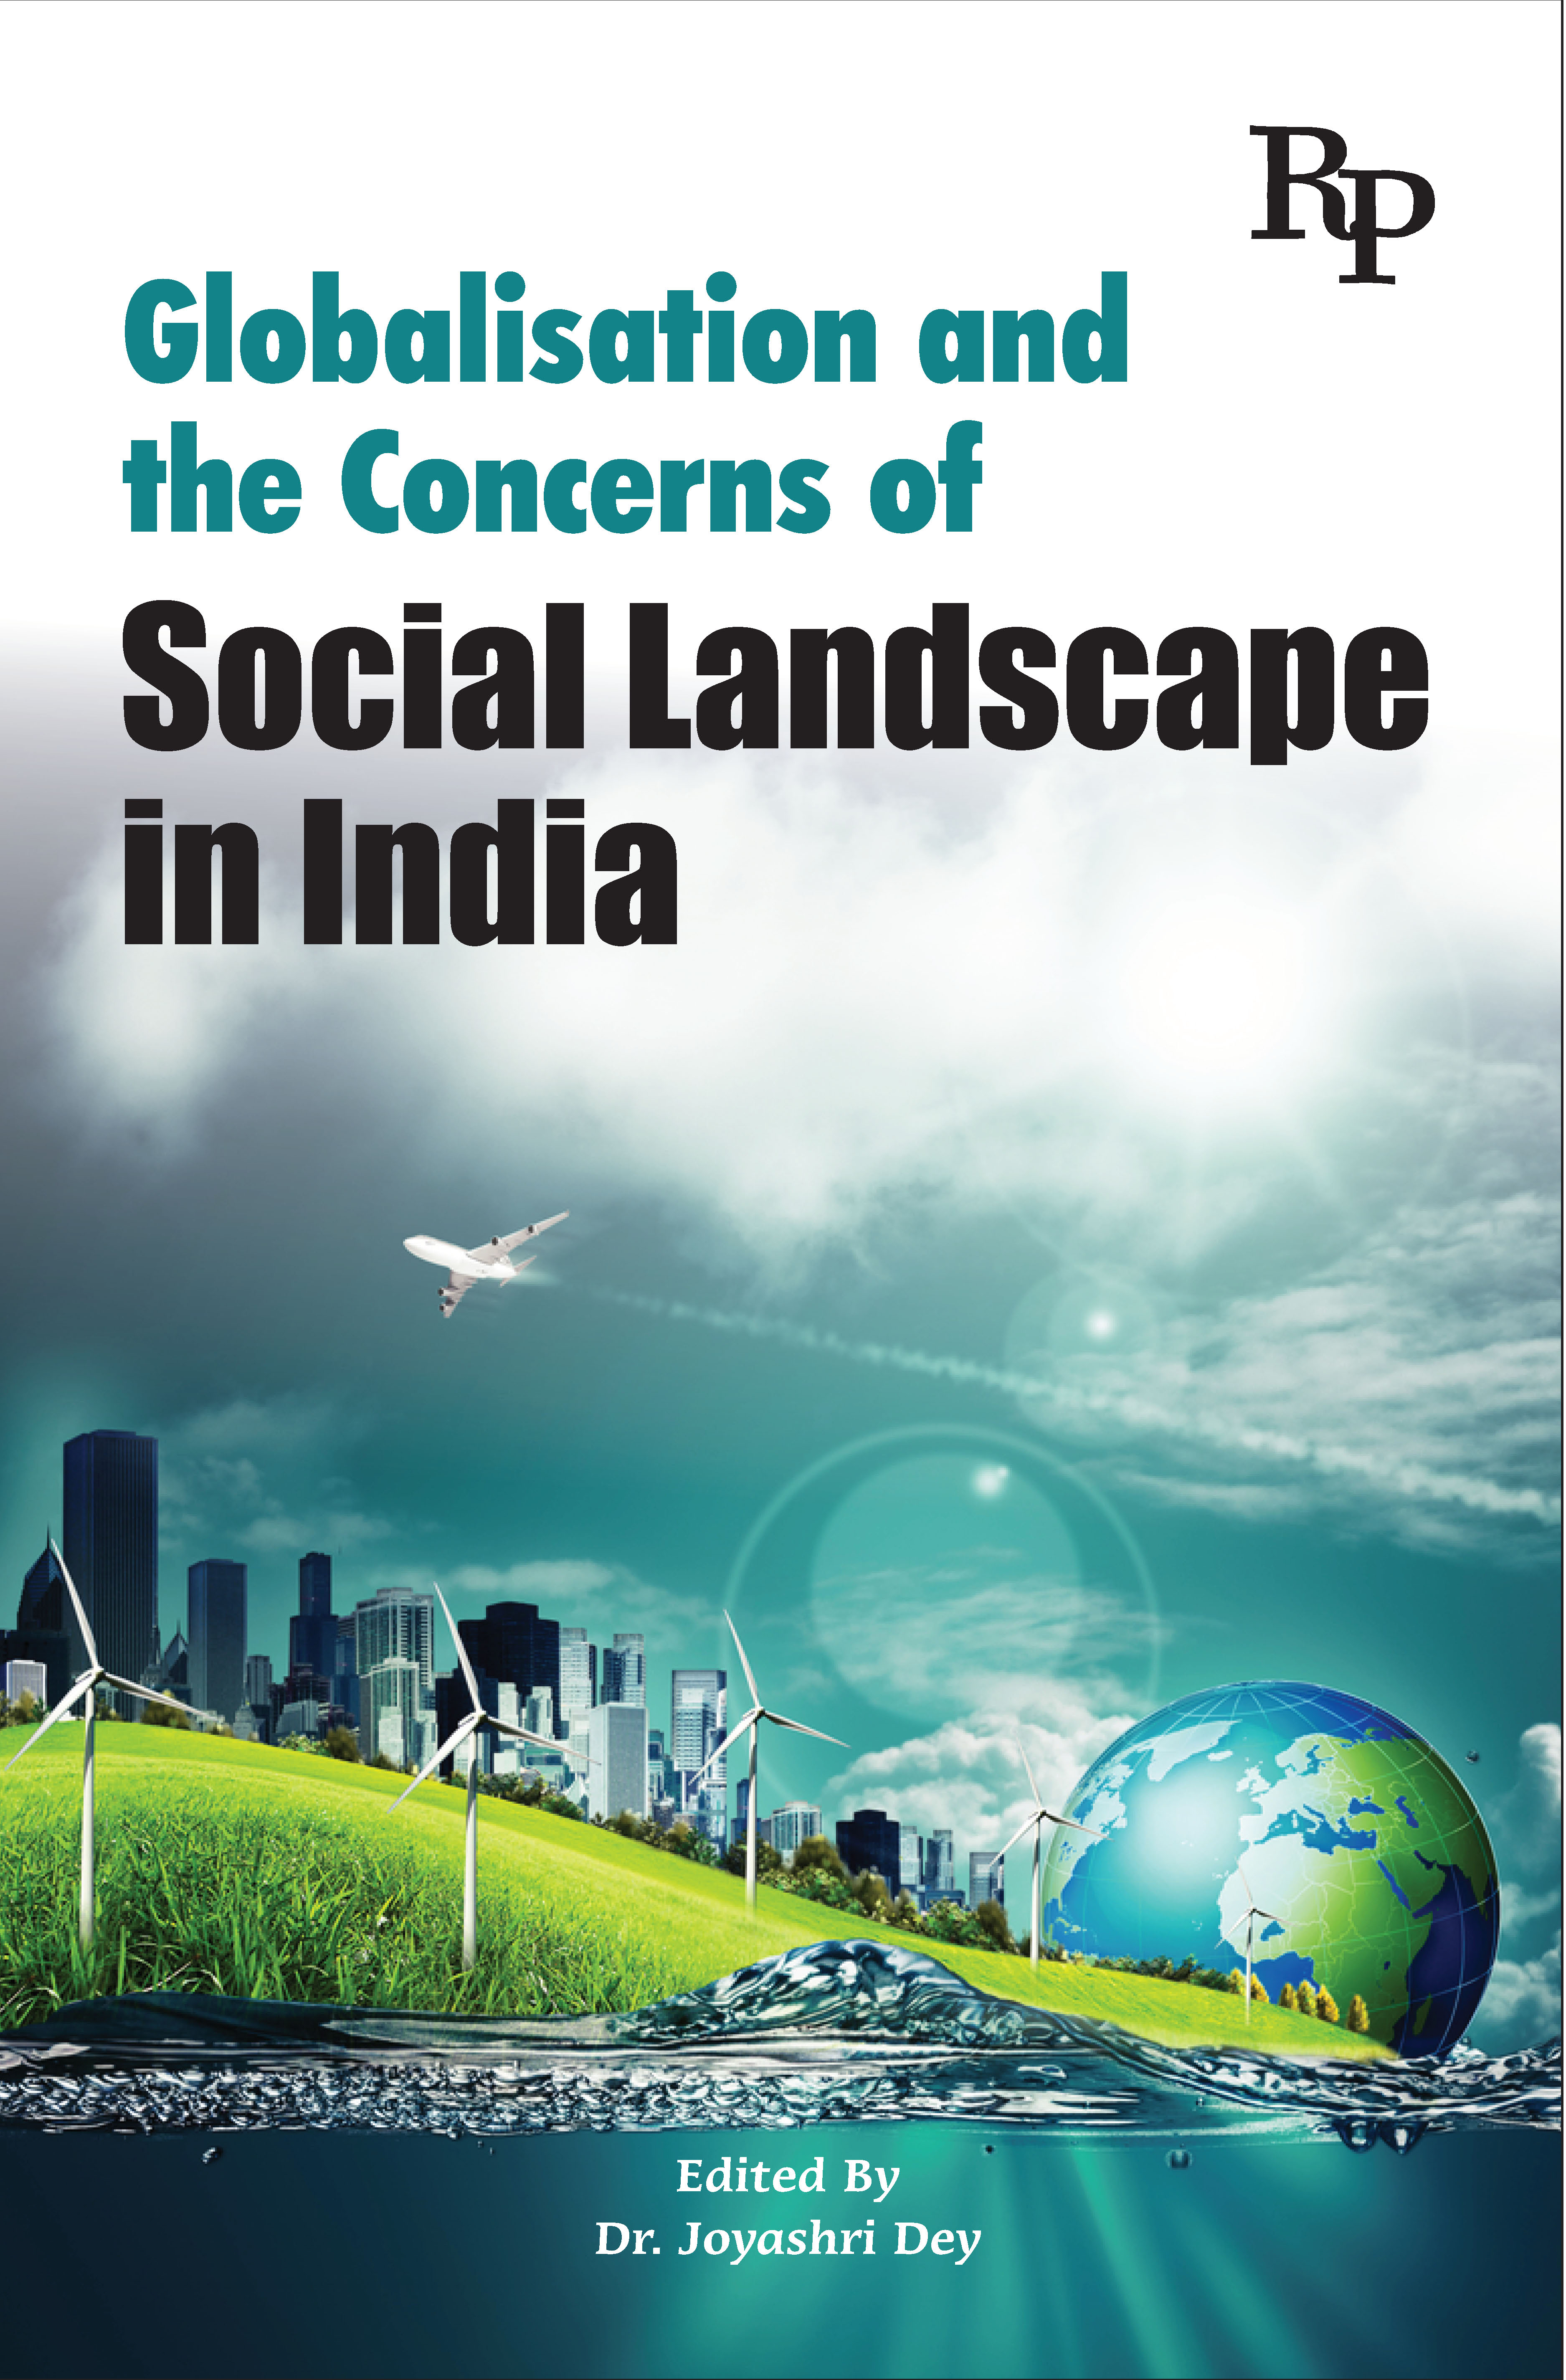 Globalisation and the Concerns of Social Landscape in India